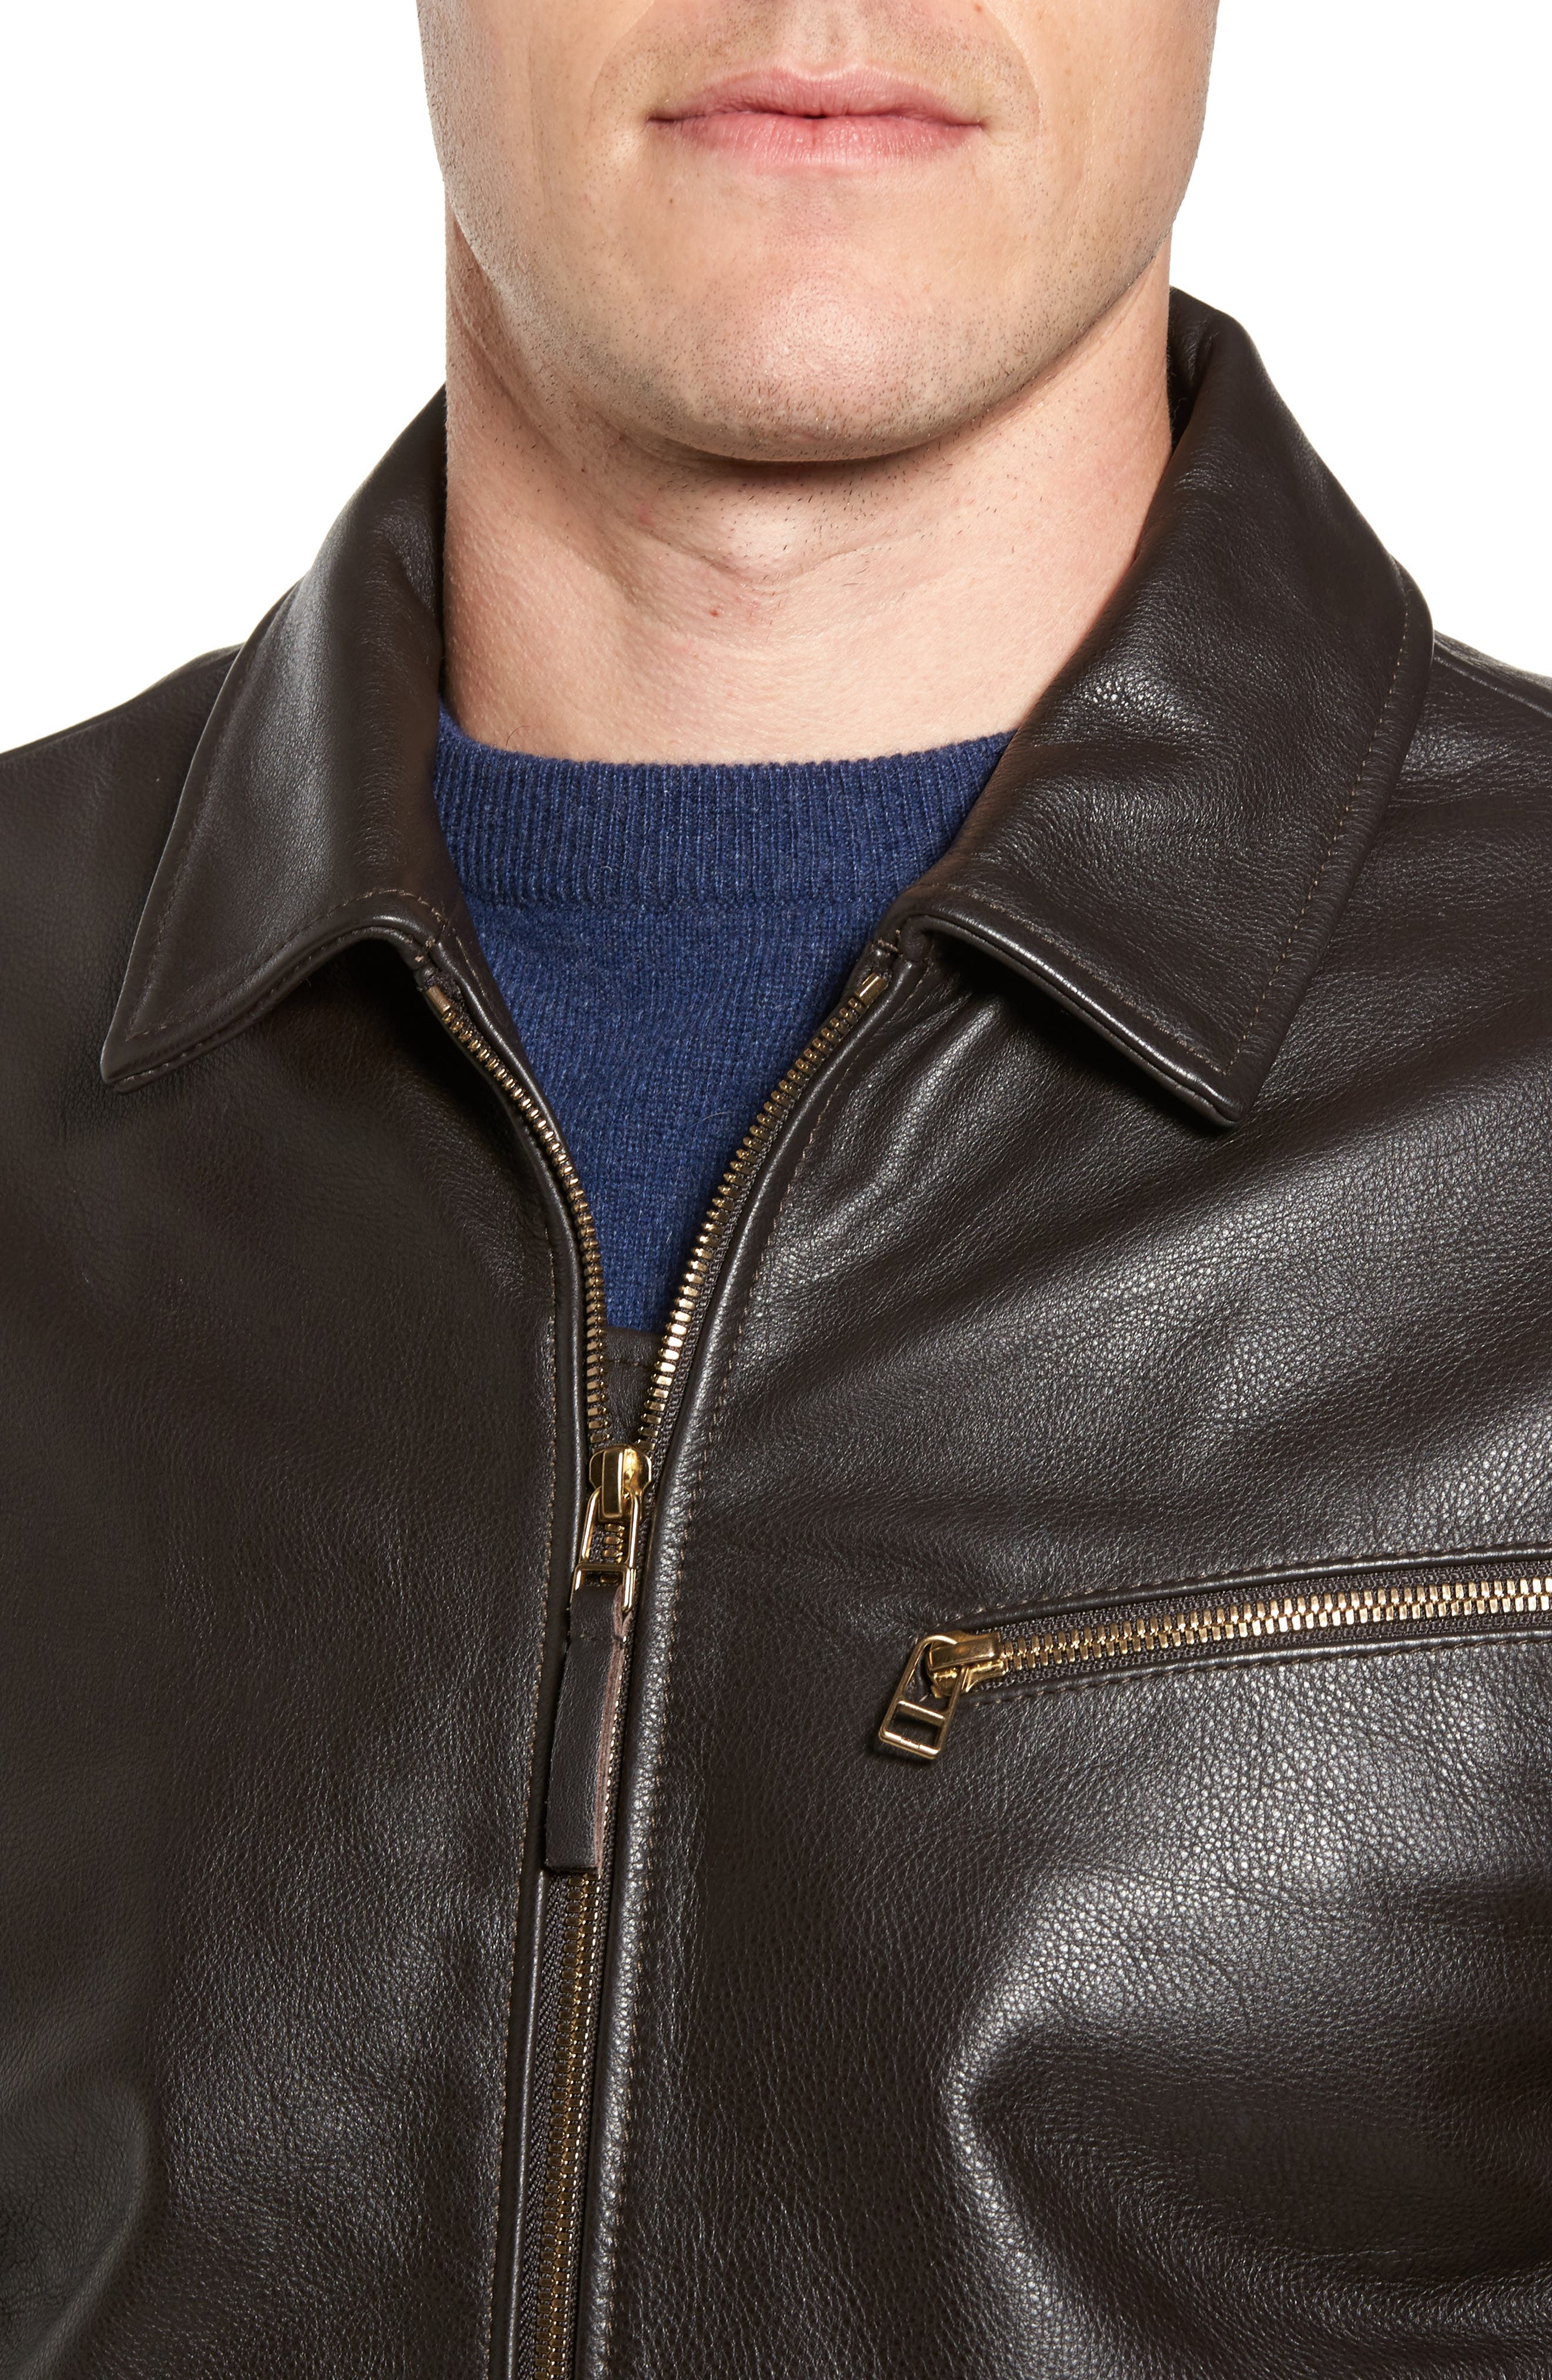 Year Round Leather Jacket,                             Alternate thumbnail 4, color,                             Espresso Brown